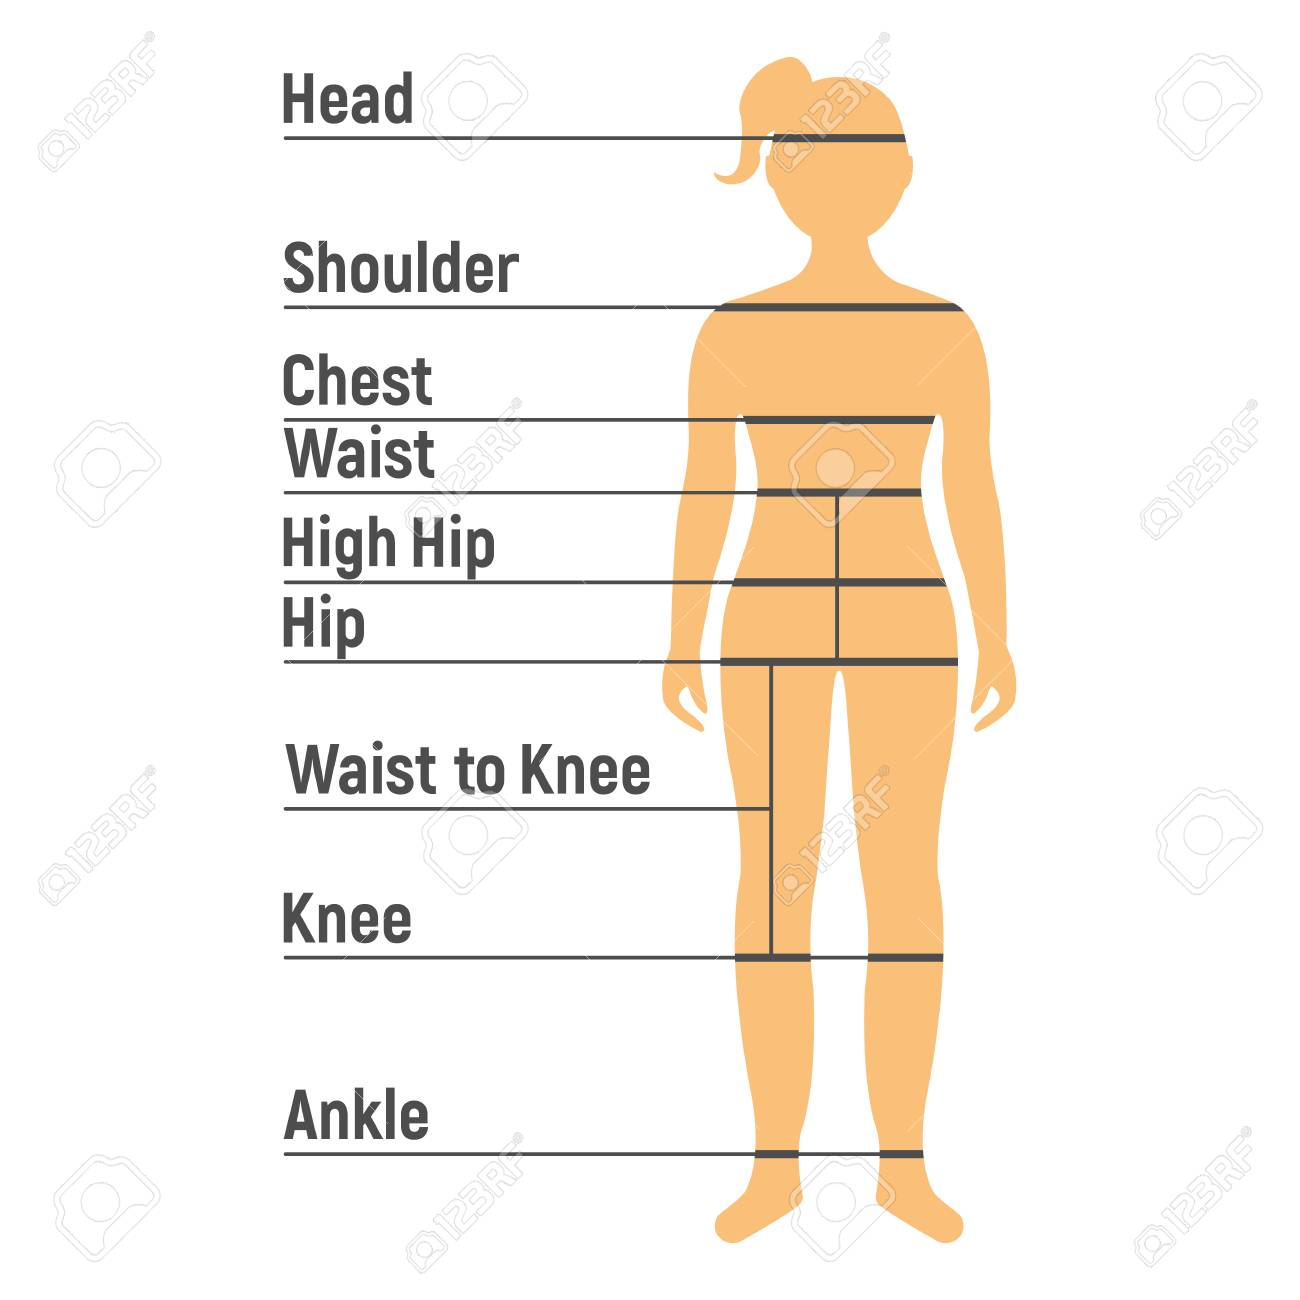 Girl Size Chart. Human front side Silhouette. Isolated on White Background. Vector illustration. - 110728465